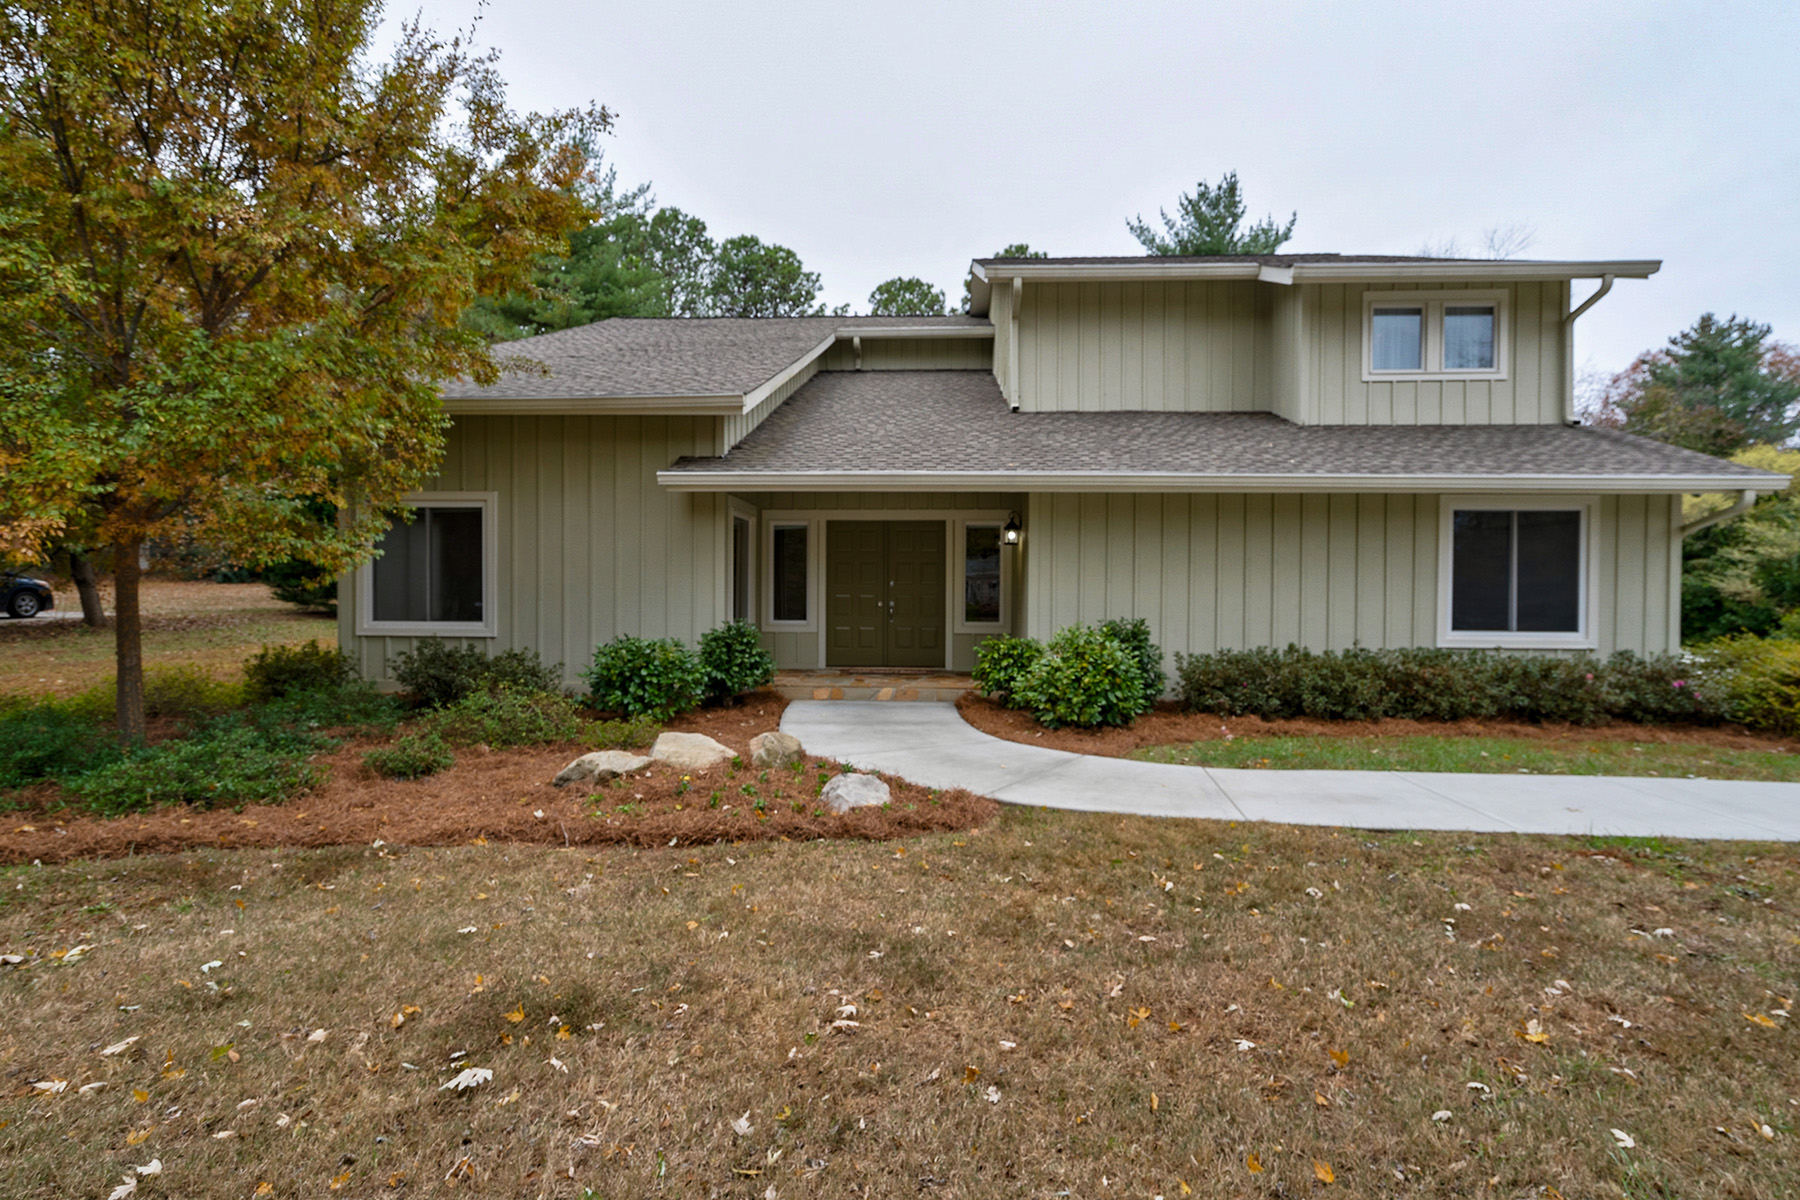 Single Family Homes のために 売買 アット Updated Move-In Ready Home In Sought After Saddle Creek 425 Saddle Creek Circle, Roswell, ジョージア 30076 アメリカ